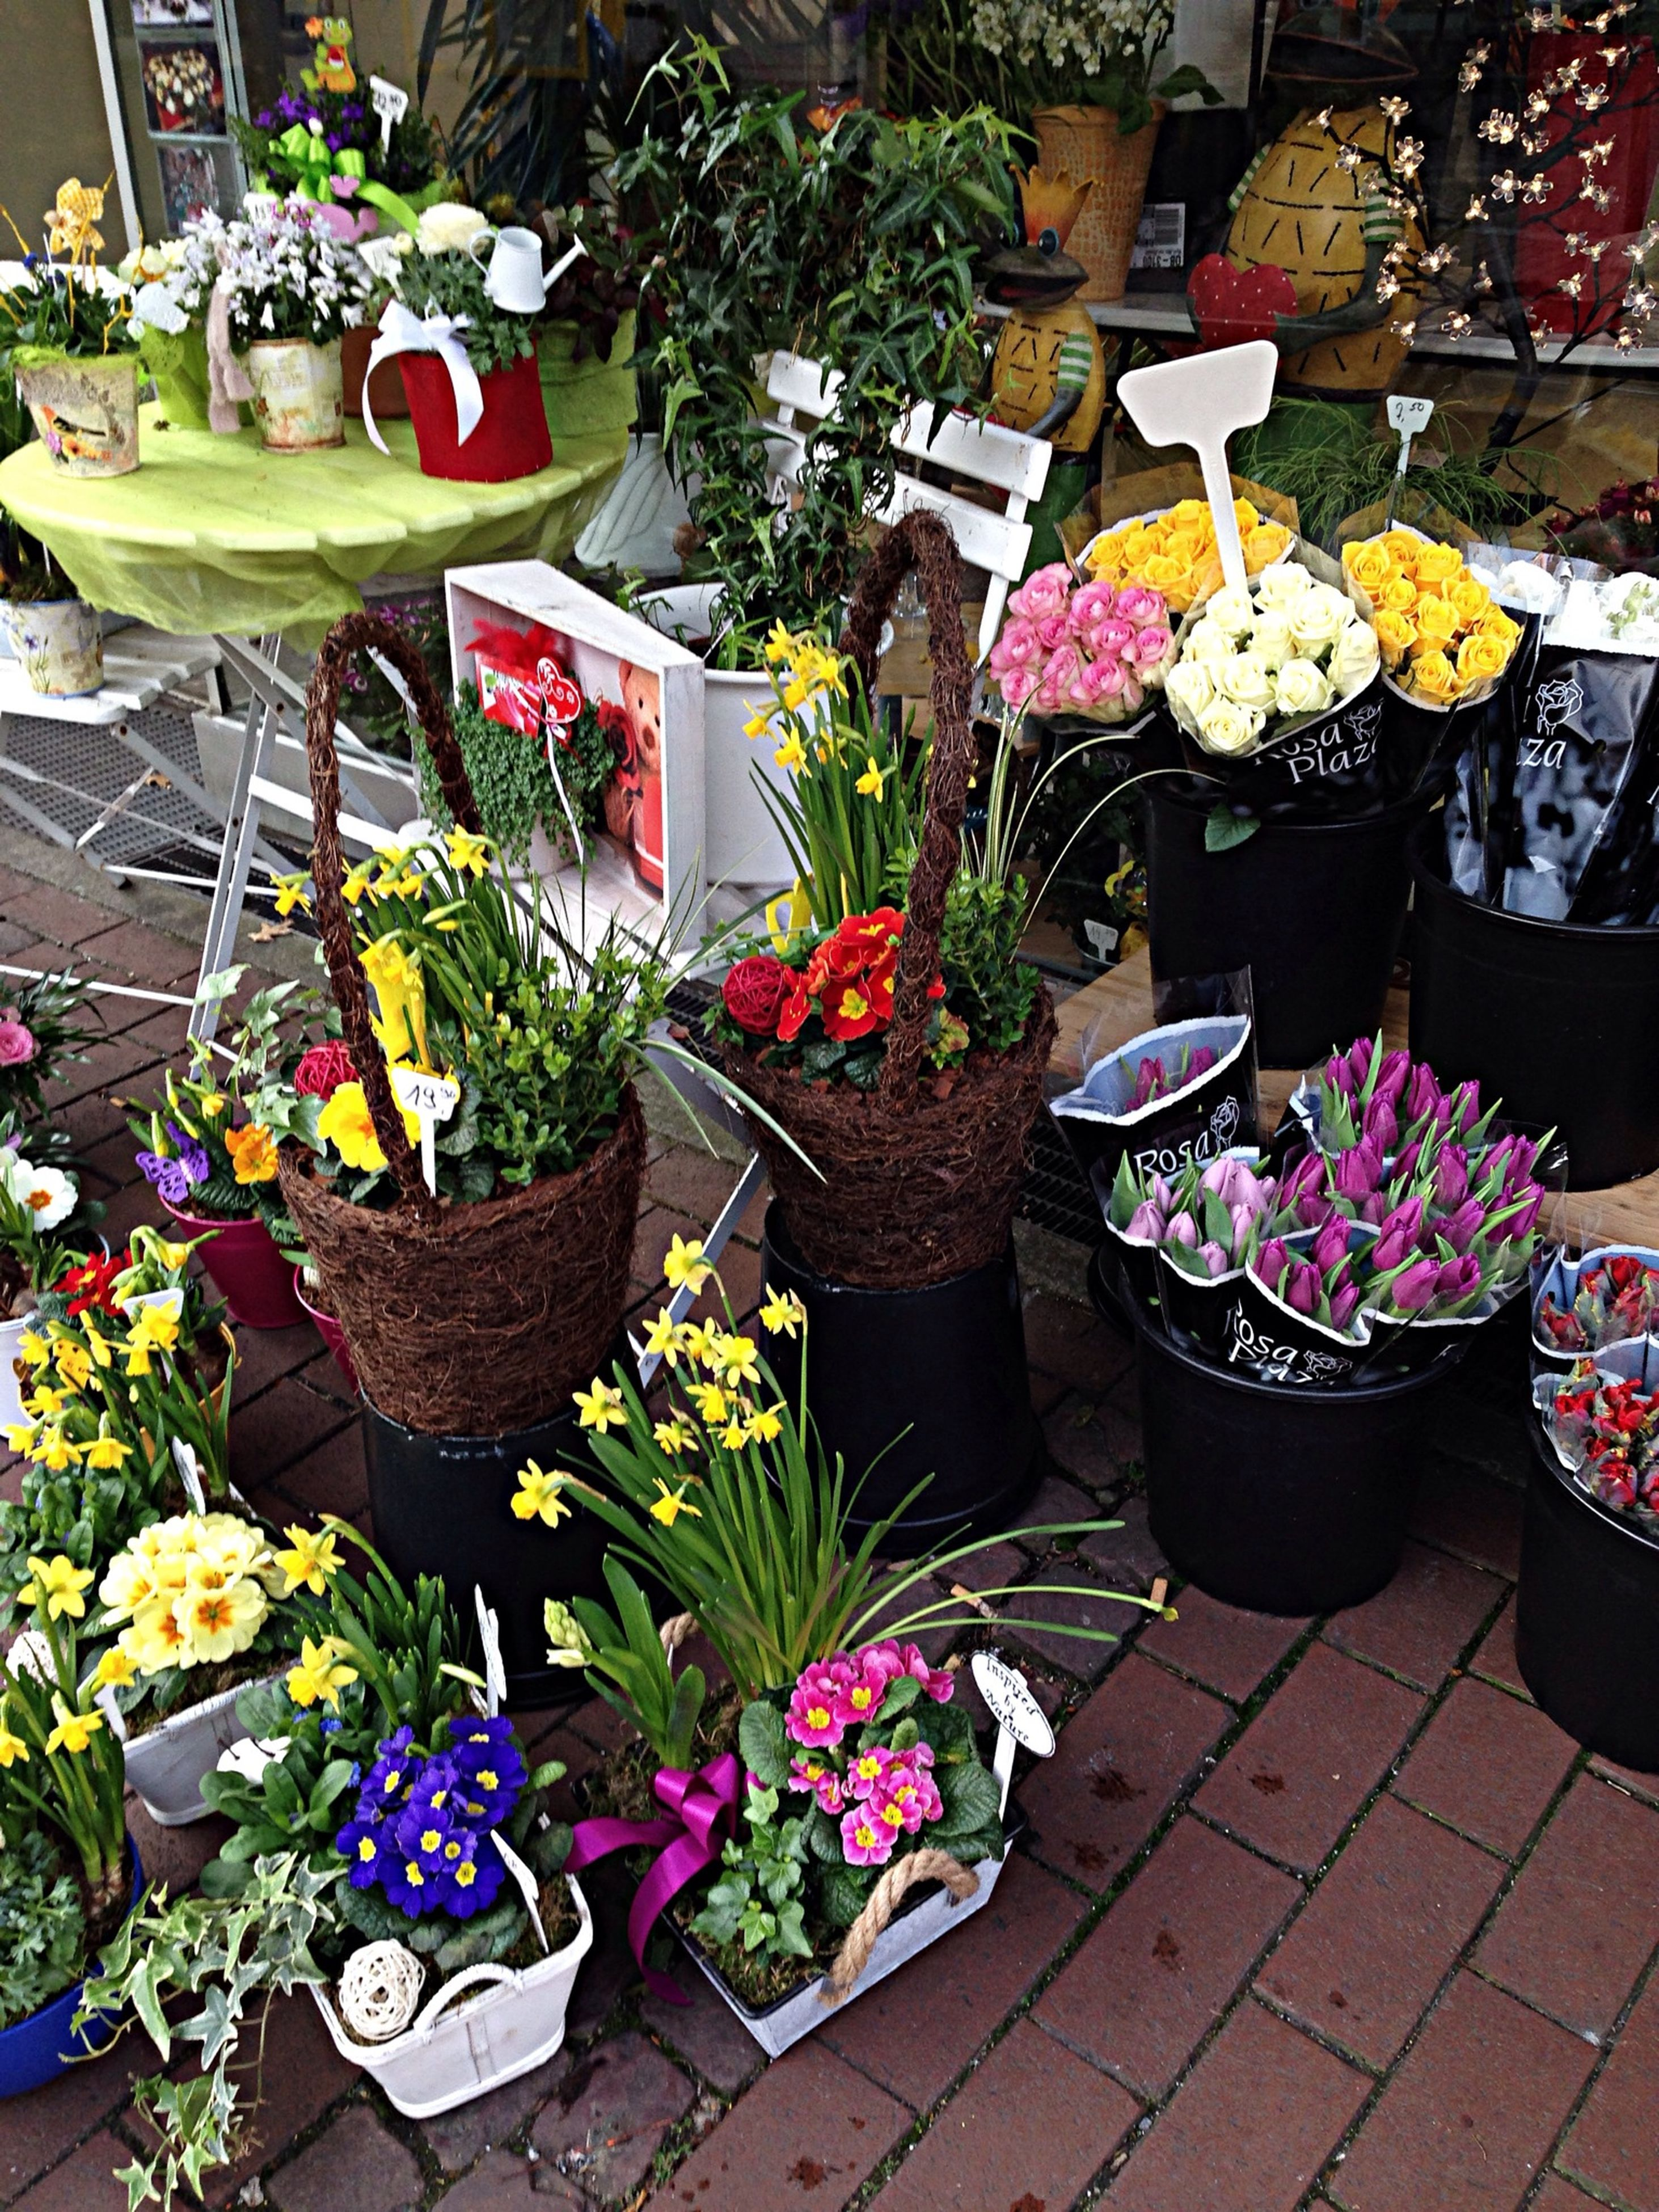 for sale, retail, variation, abundance, choice, large group of objects, market, arrangement, market stall, flower, multi colored, freshness, potted plant, high angle view, display, small business, plant, price tag, collection, sale